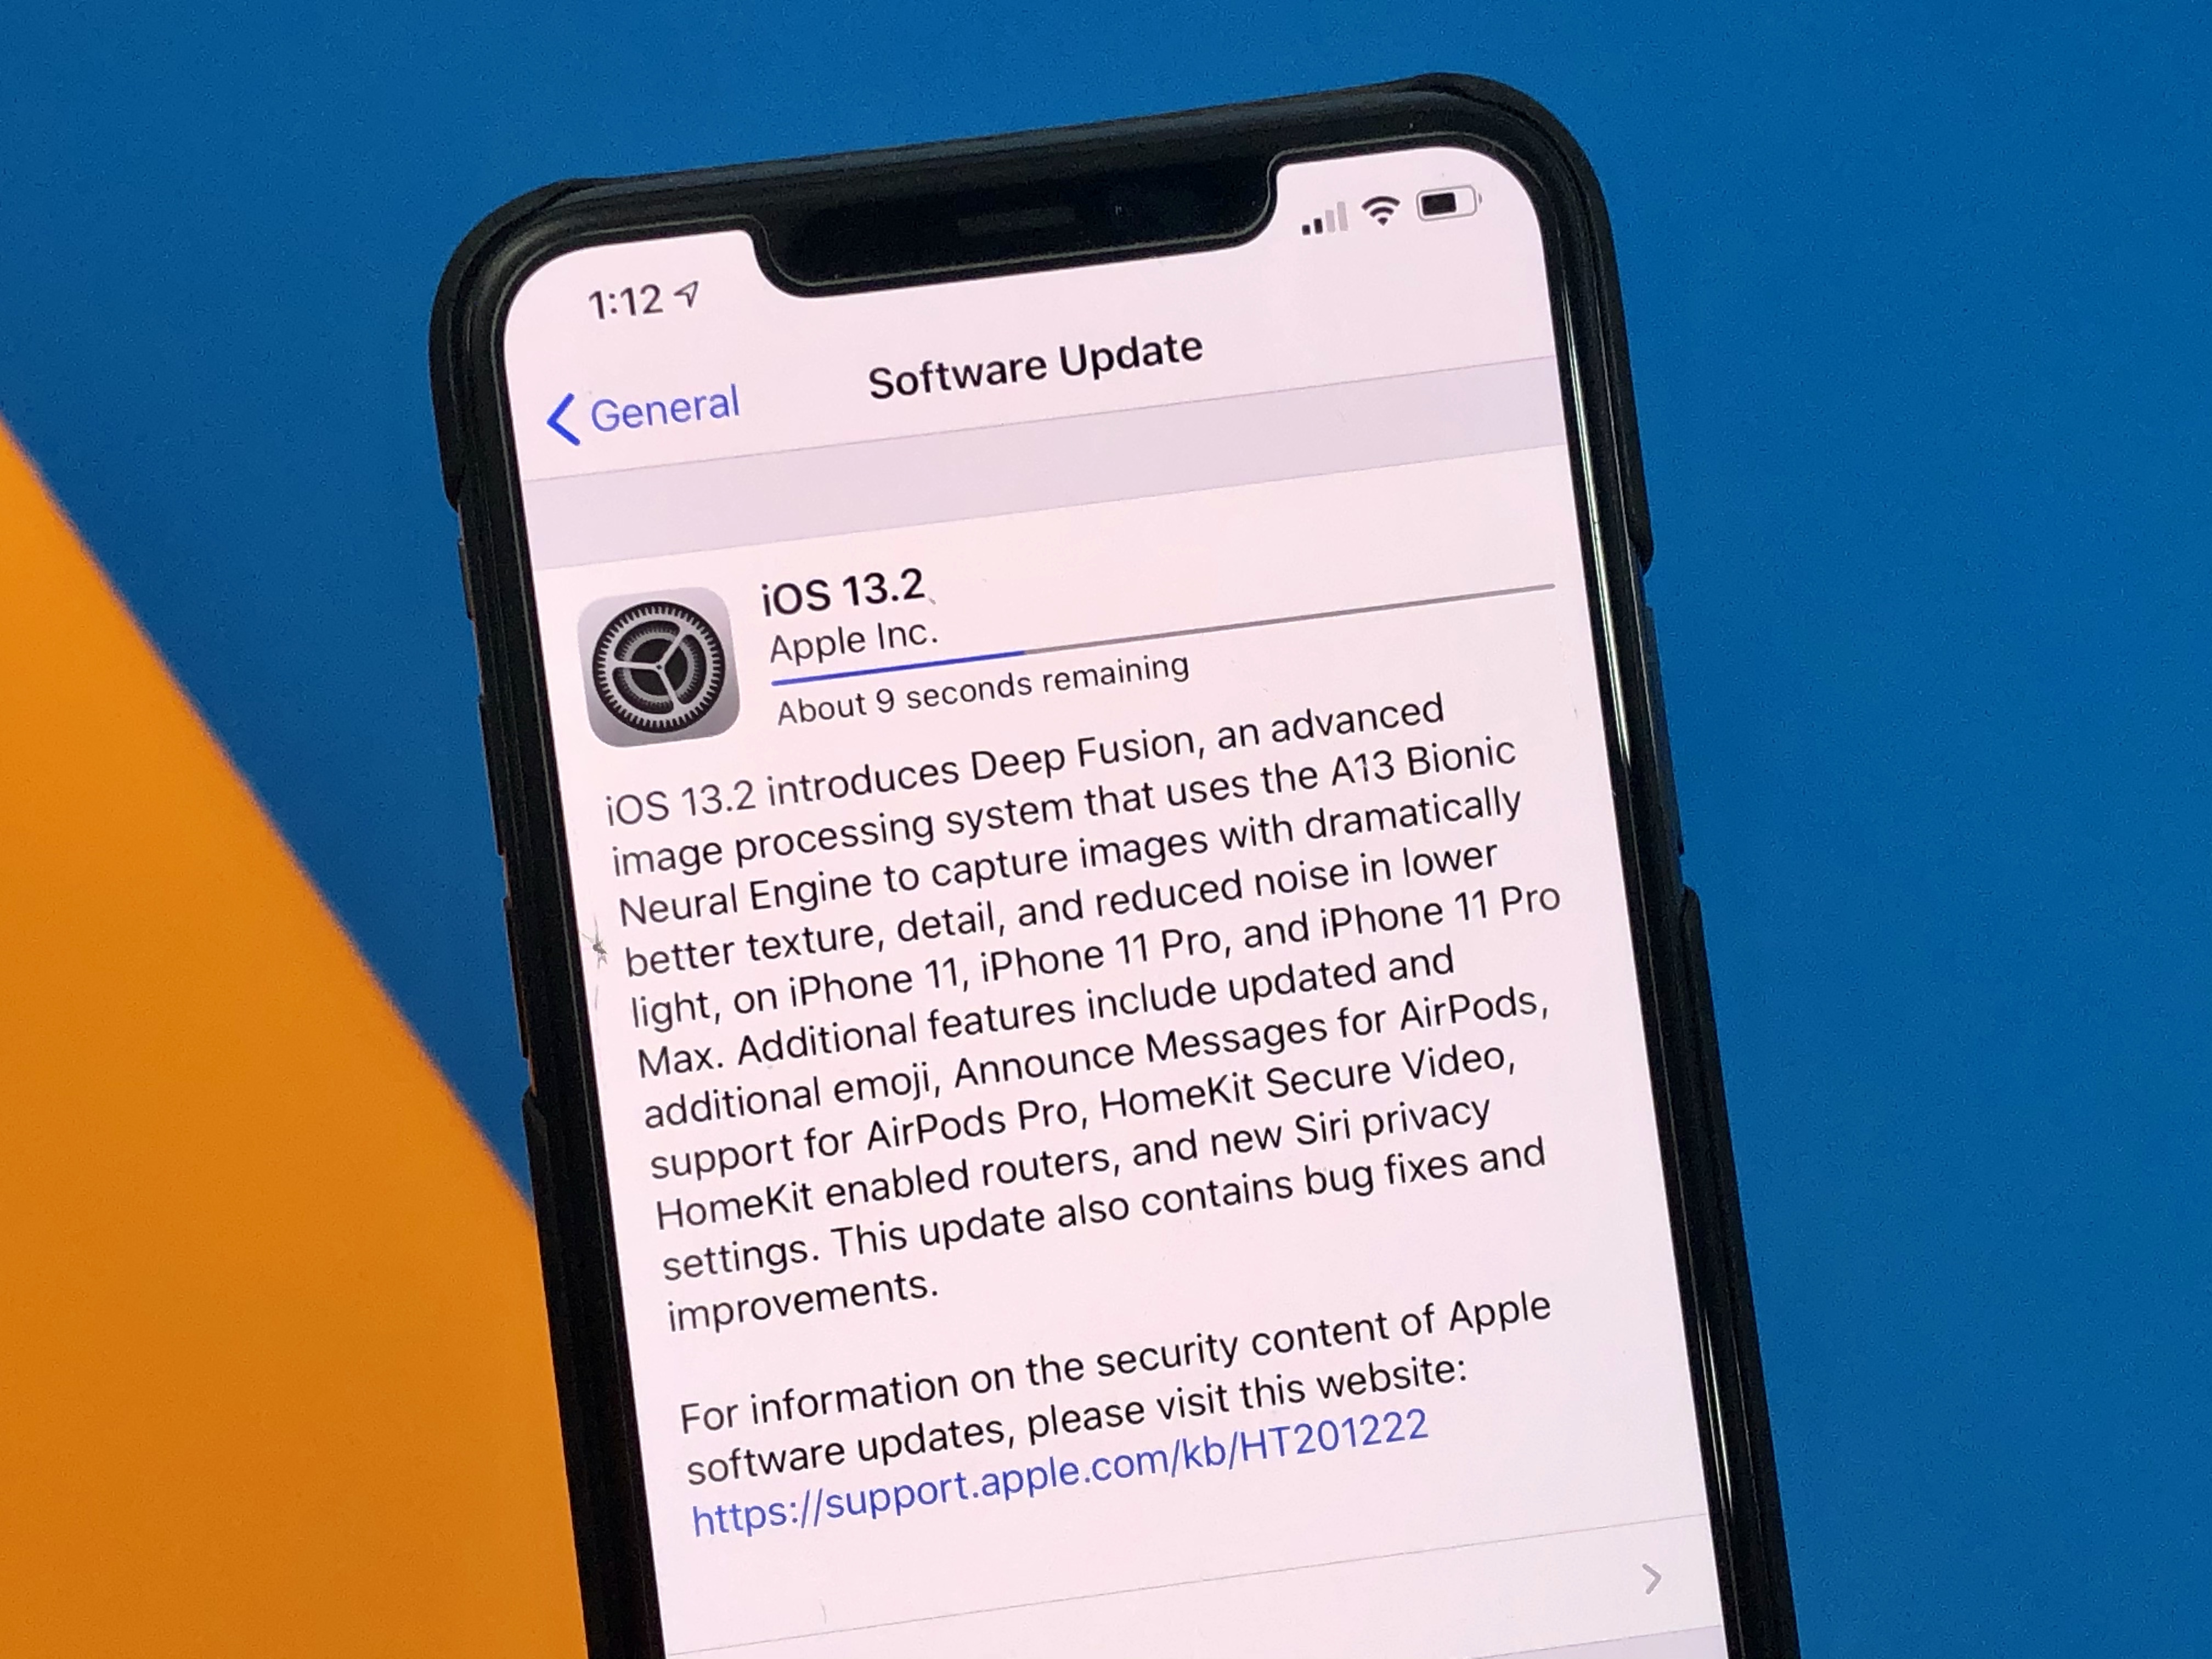 5 Things to Know About the iOS 13.2 Update